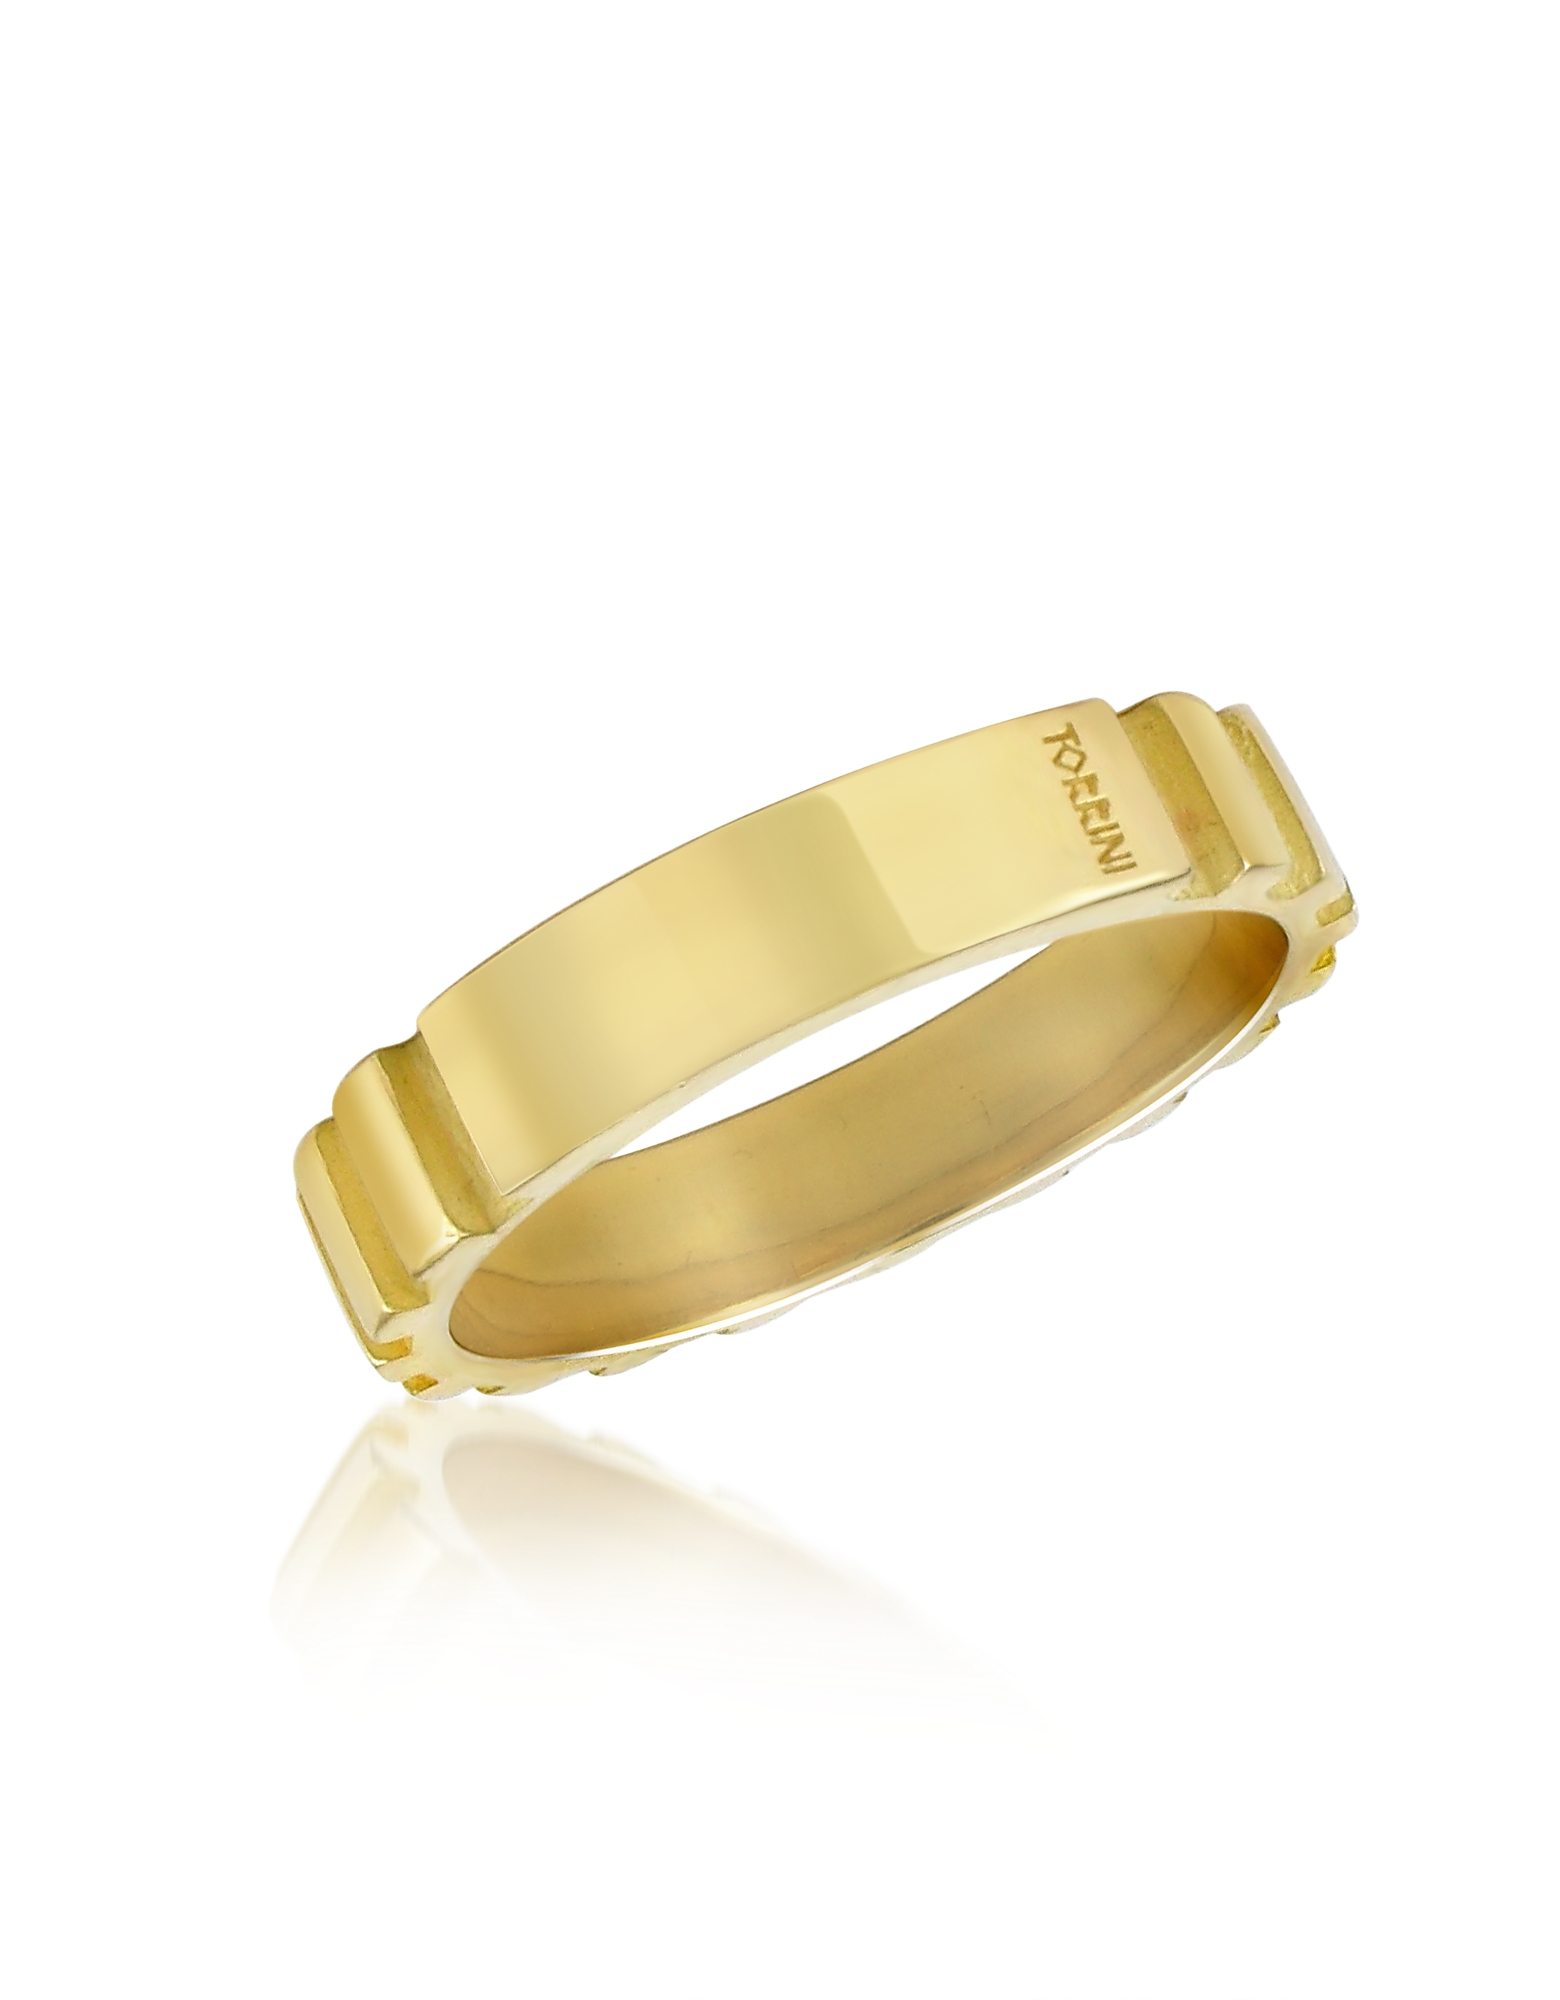 Torrini Men's Rings, Stripes - 18k Yellow Gold Band Ring